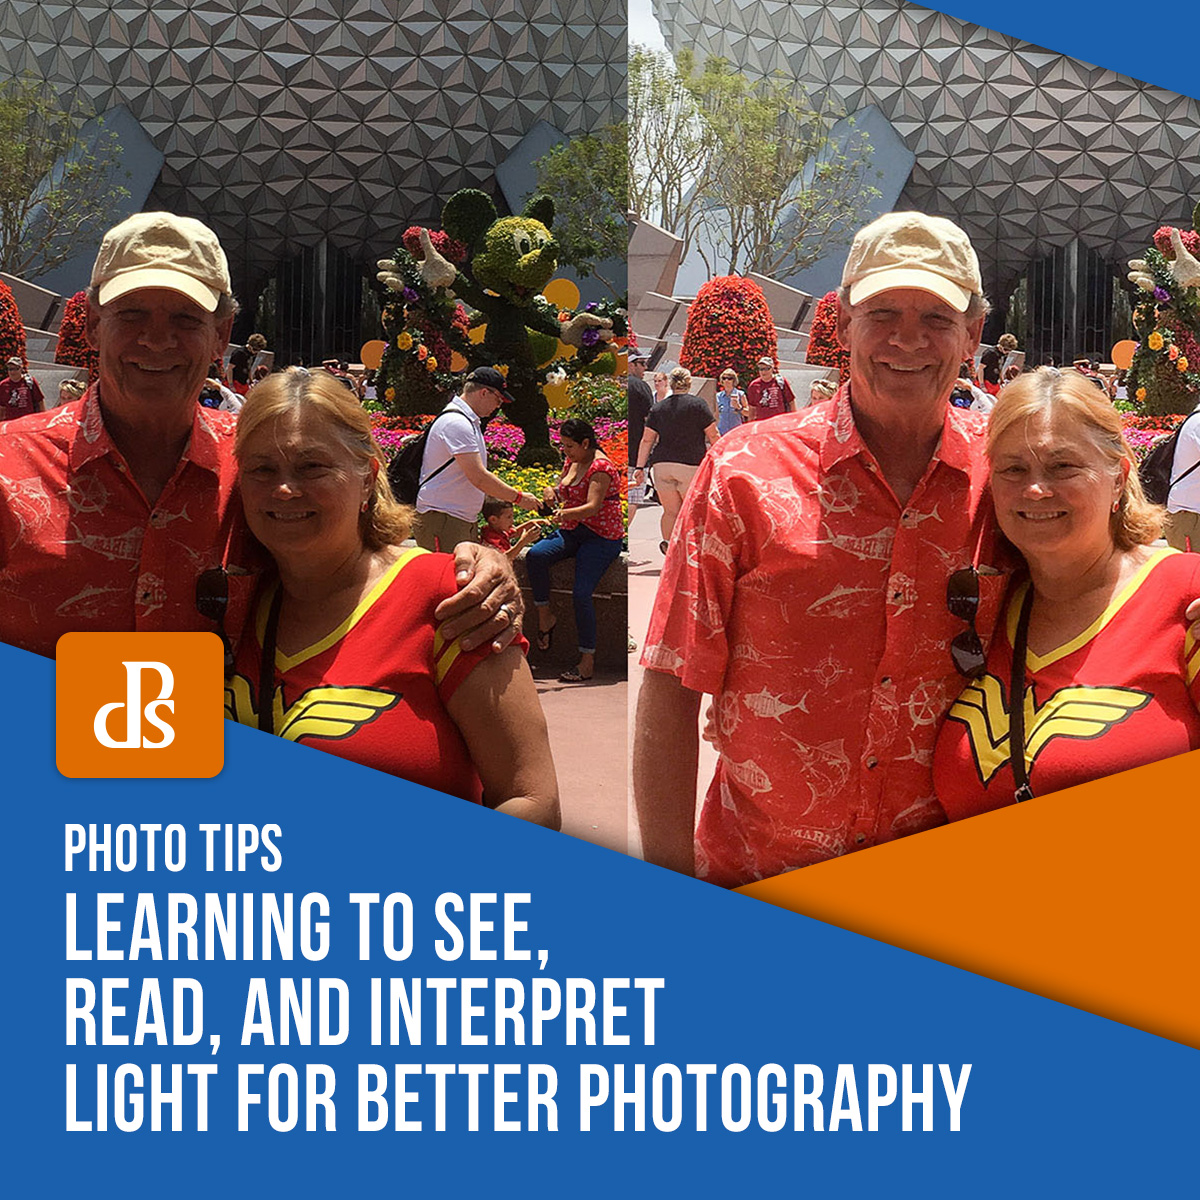 Learning to See, Read, and Interpret Light for Better Photography